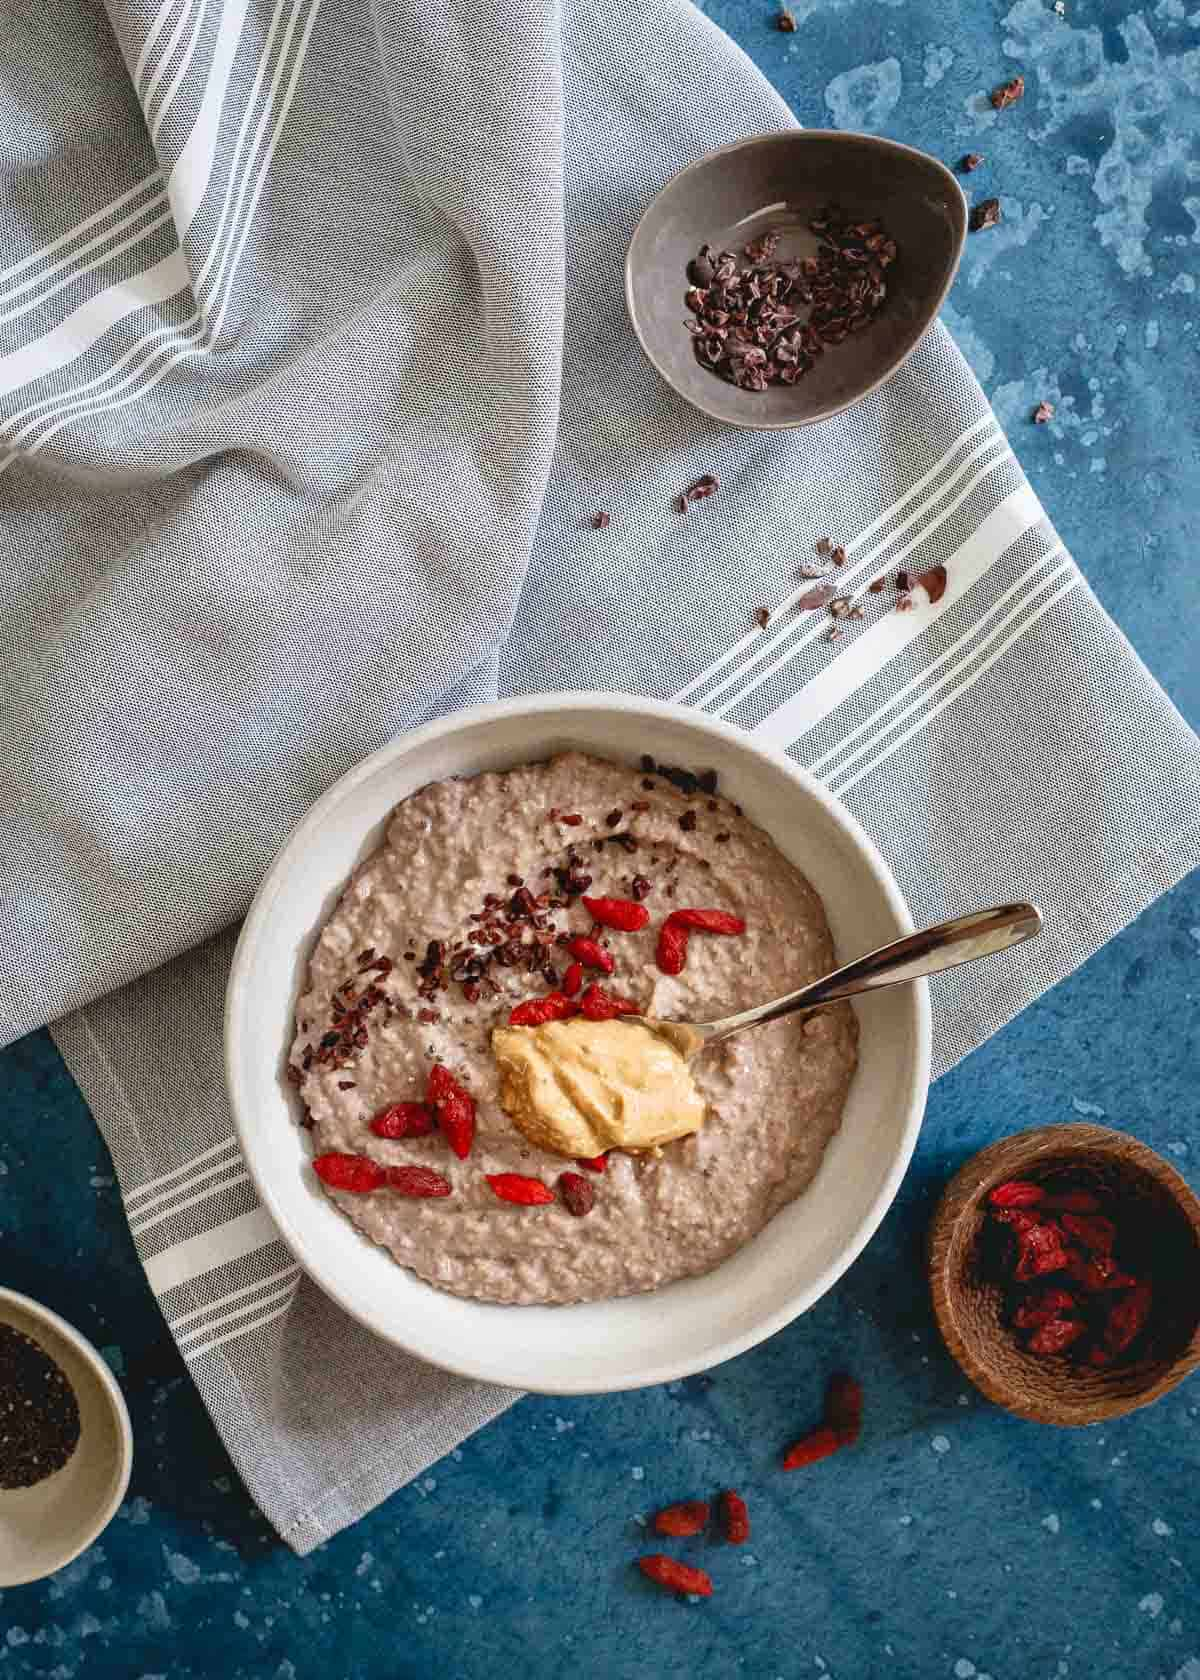 Refuel after your workout with this easy bowl of chocolate protein oat bran.